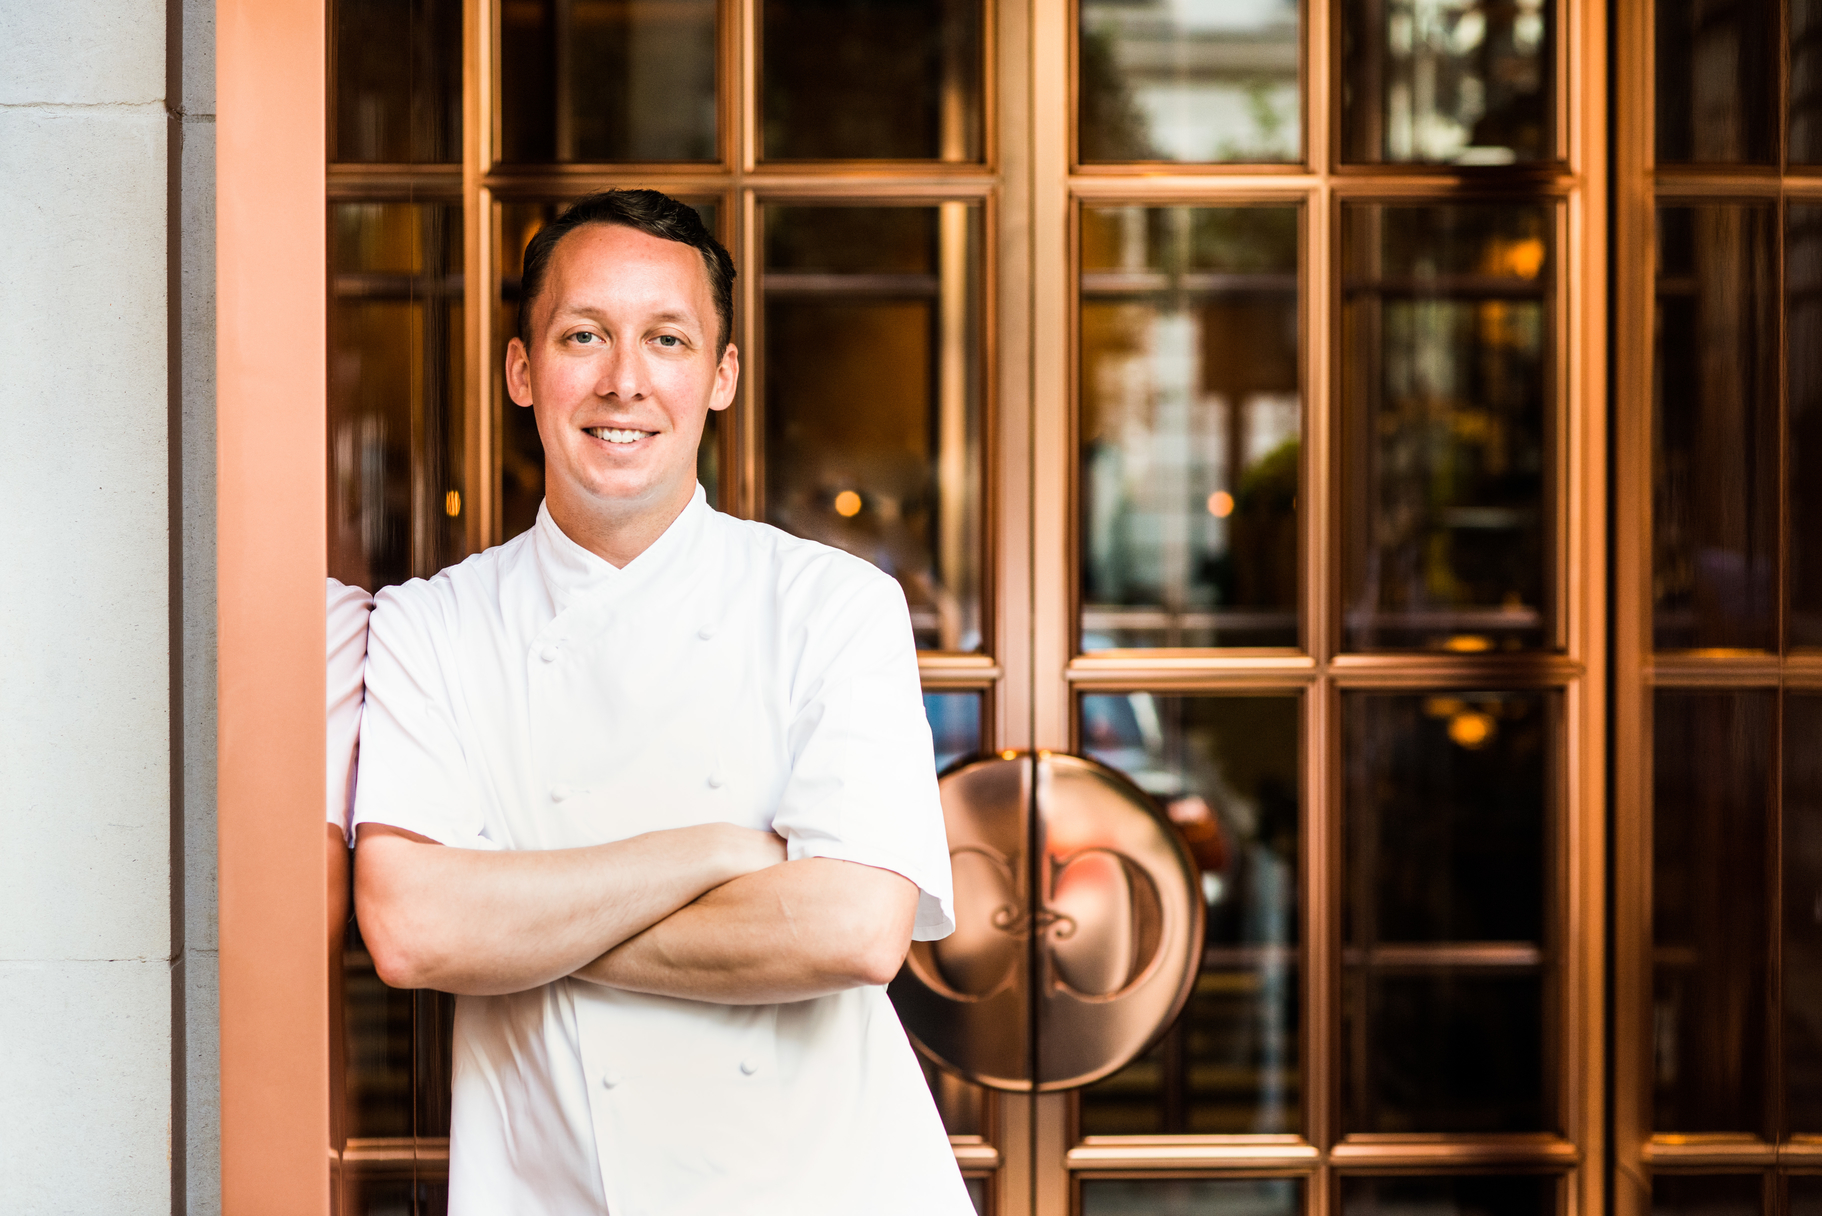 Calum Franklin, executive chef at Holborn Dining Room, Rosewood London